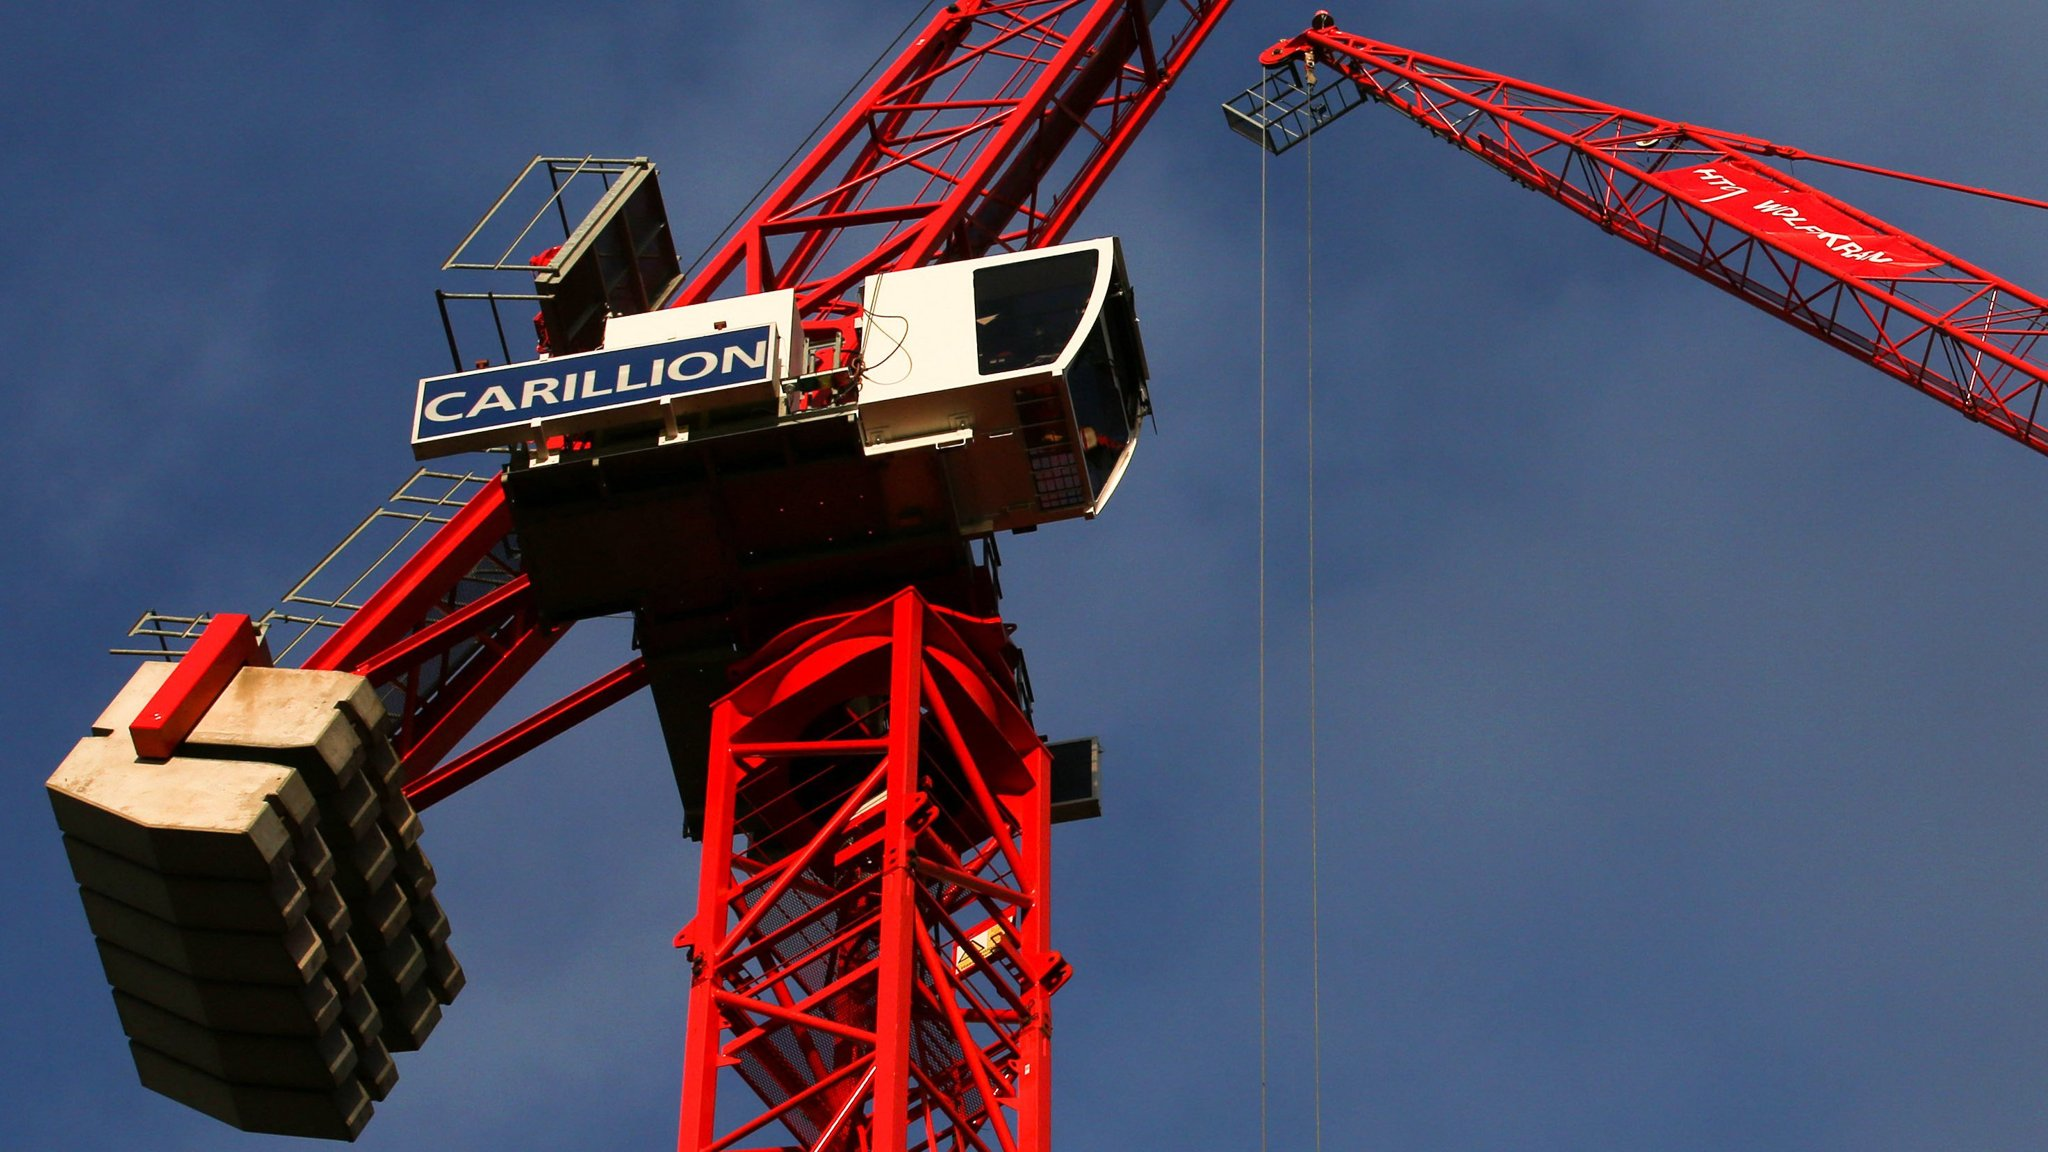 Cable warns taxpayers must not bear brunt of Carillion bailout